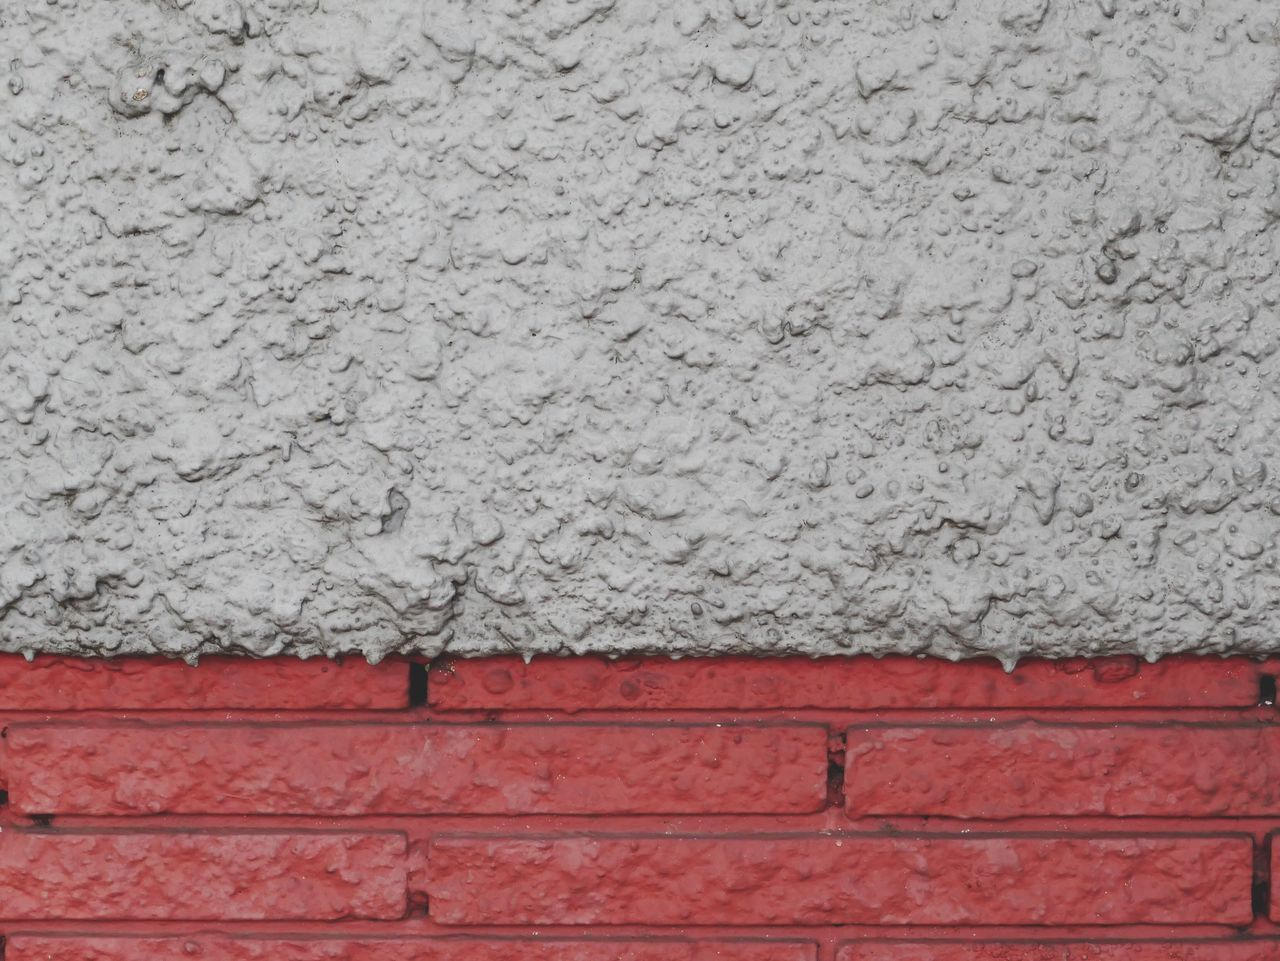 Wall - Building Feature Built Structure Textured  Architecture Building Exterior Brick Red Rough White Color Outdoors City Cracked Backgrounds Paint Day No People Close-up